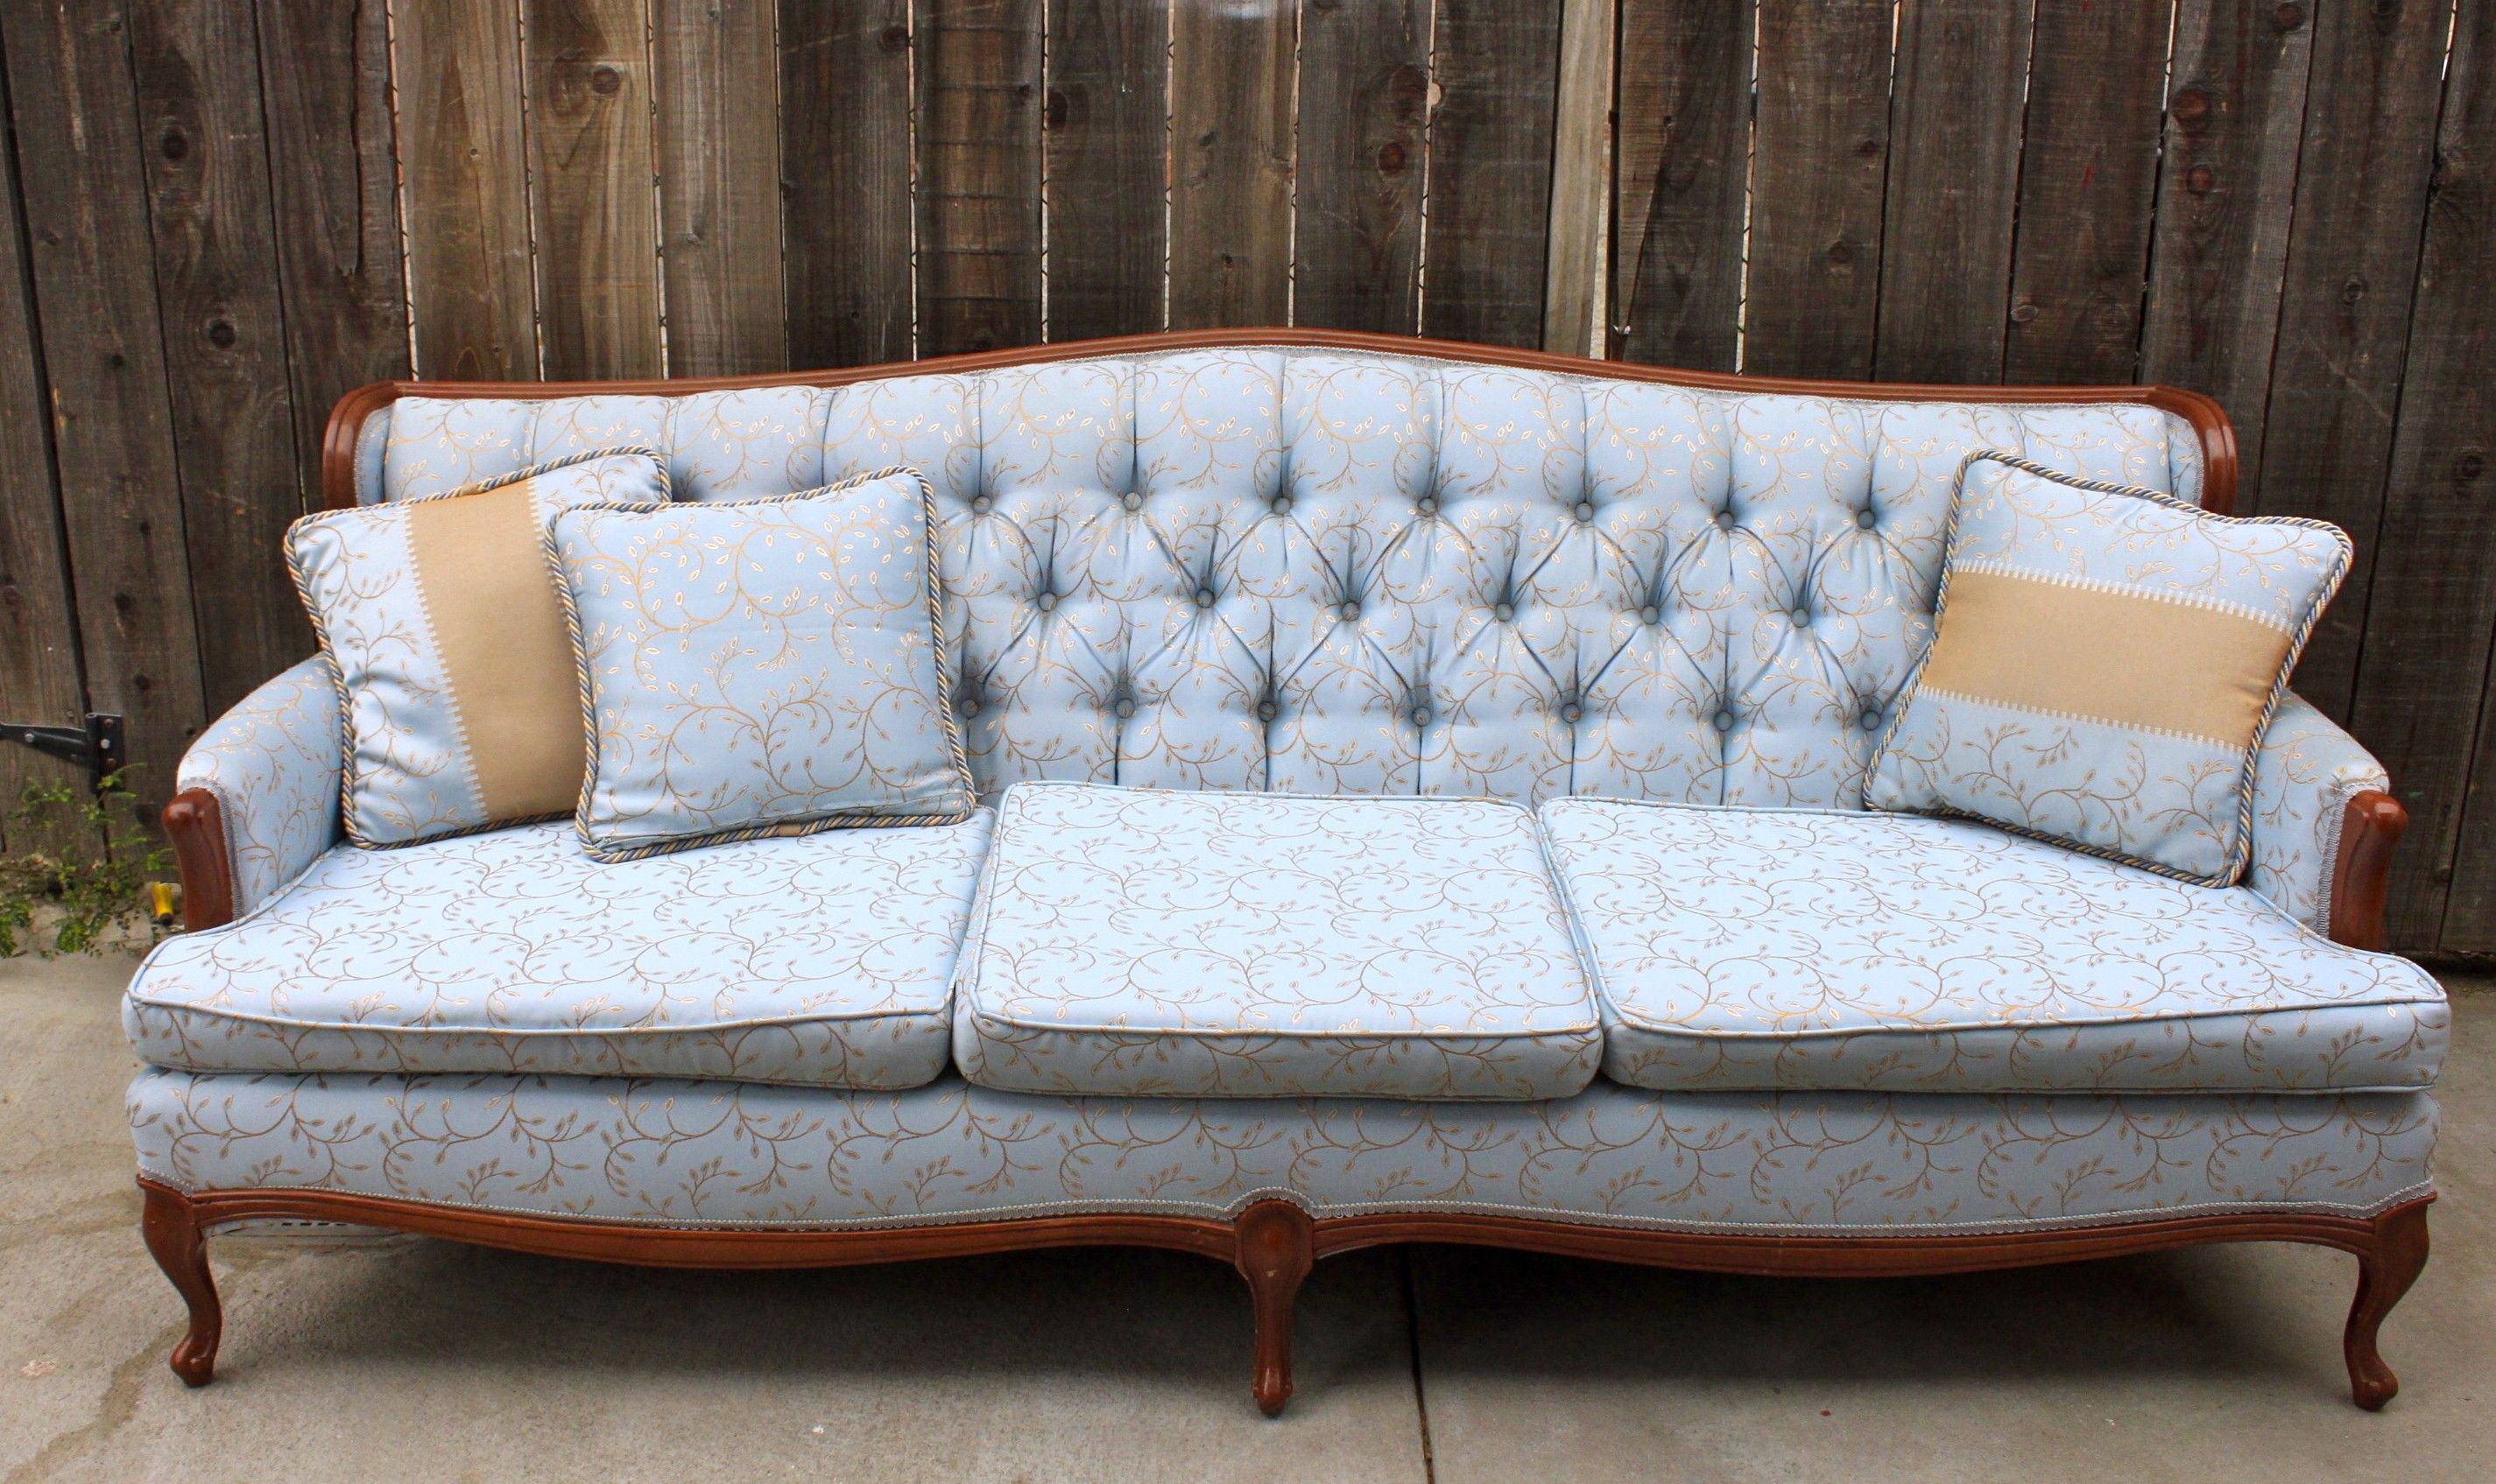 research long american night journey couch couches into historic antique pin days